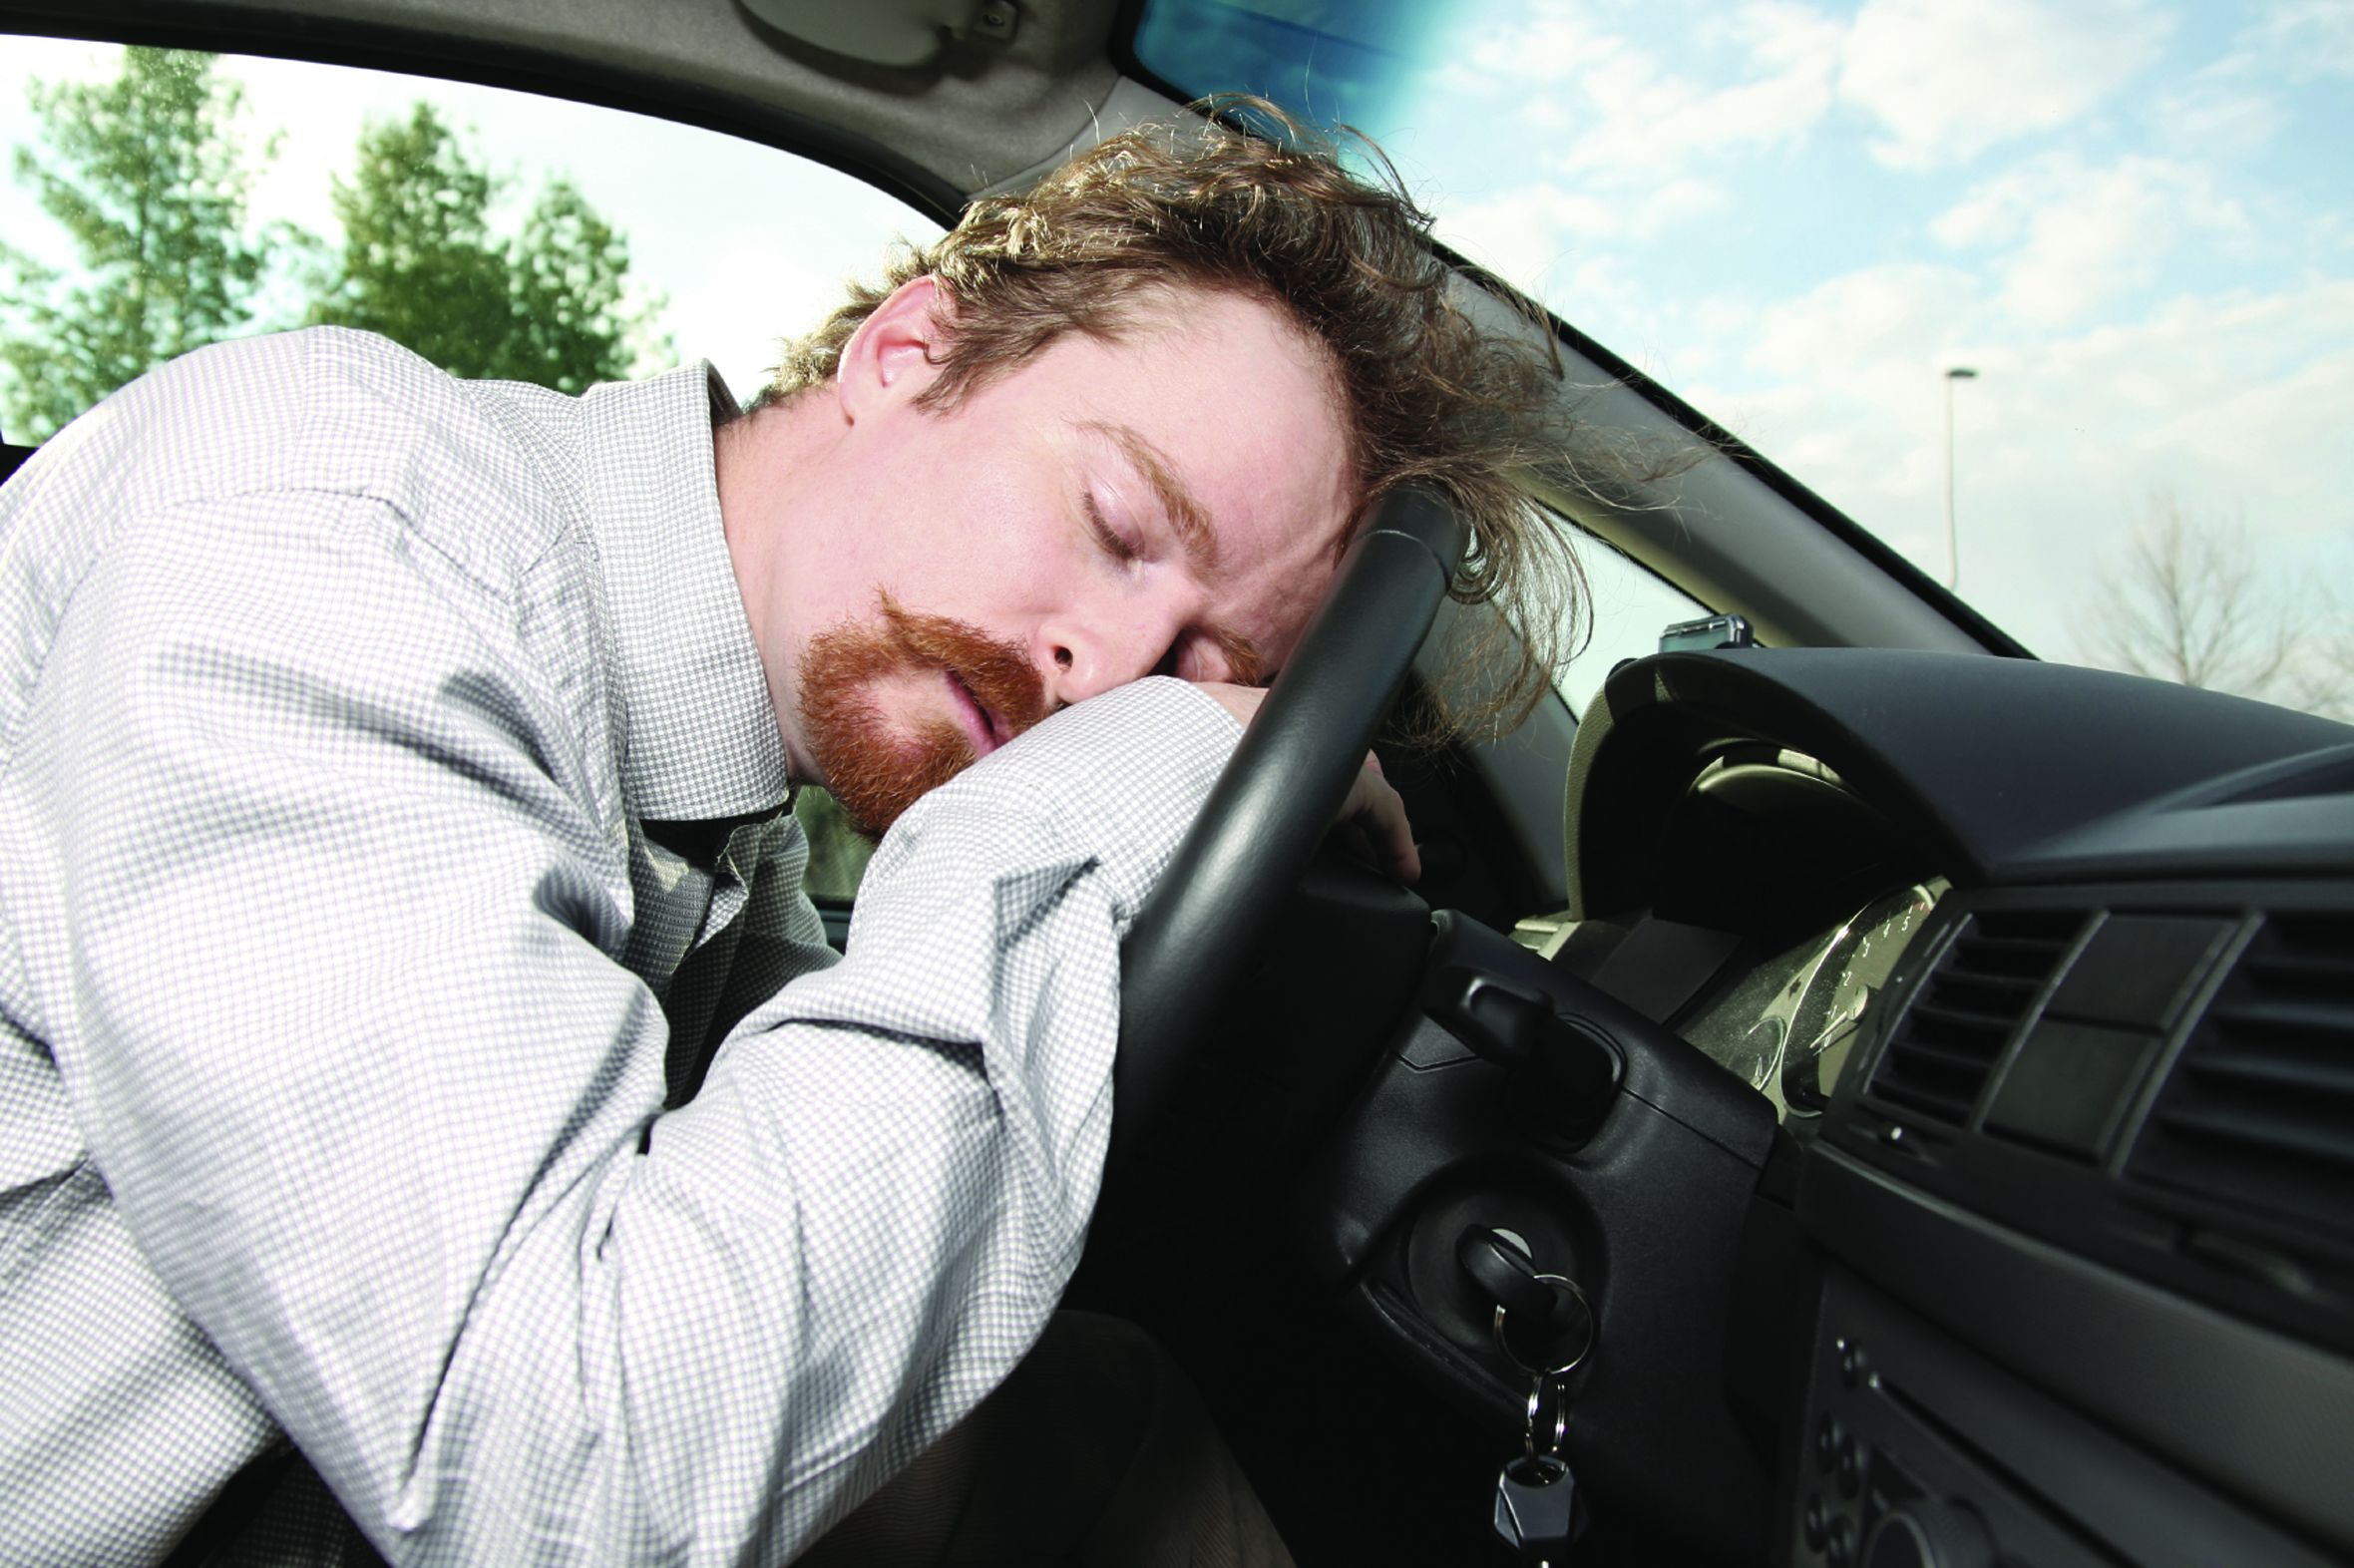 Drowsy Driving: A Risk for Everyone